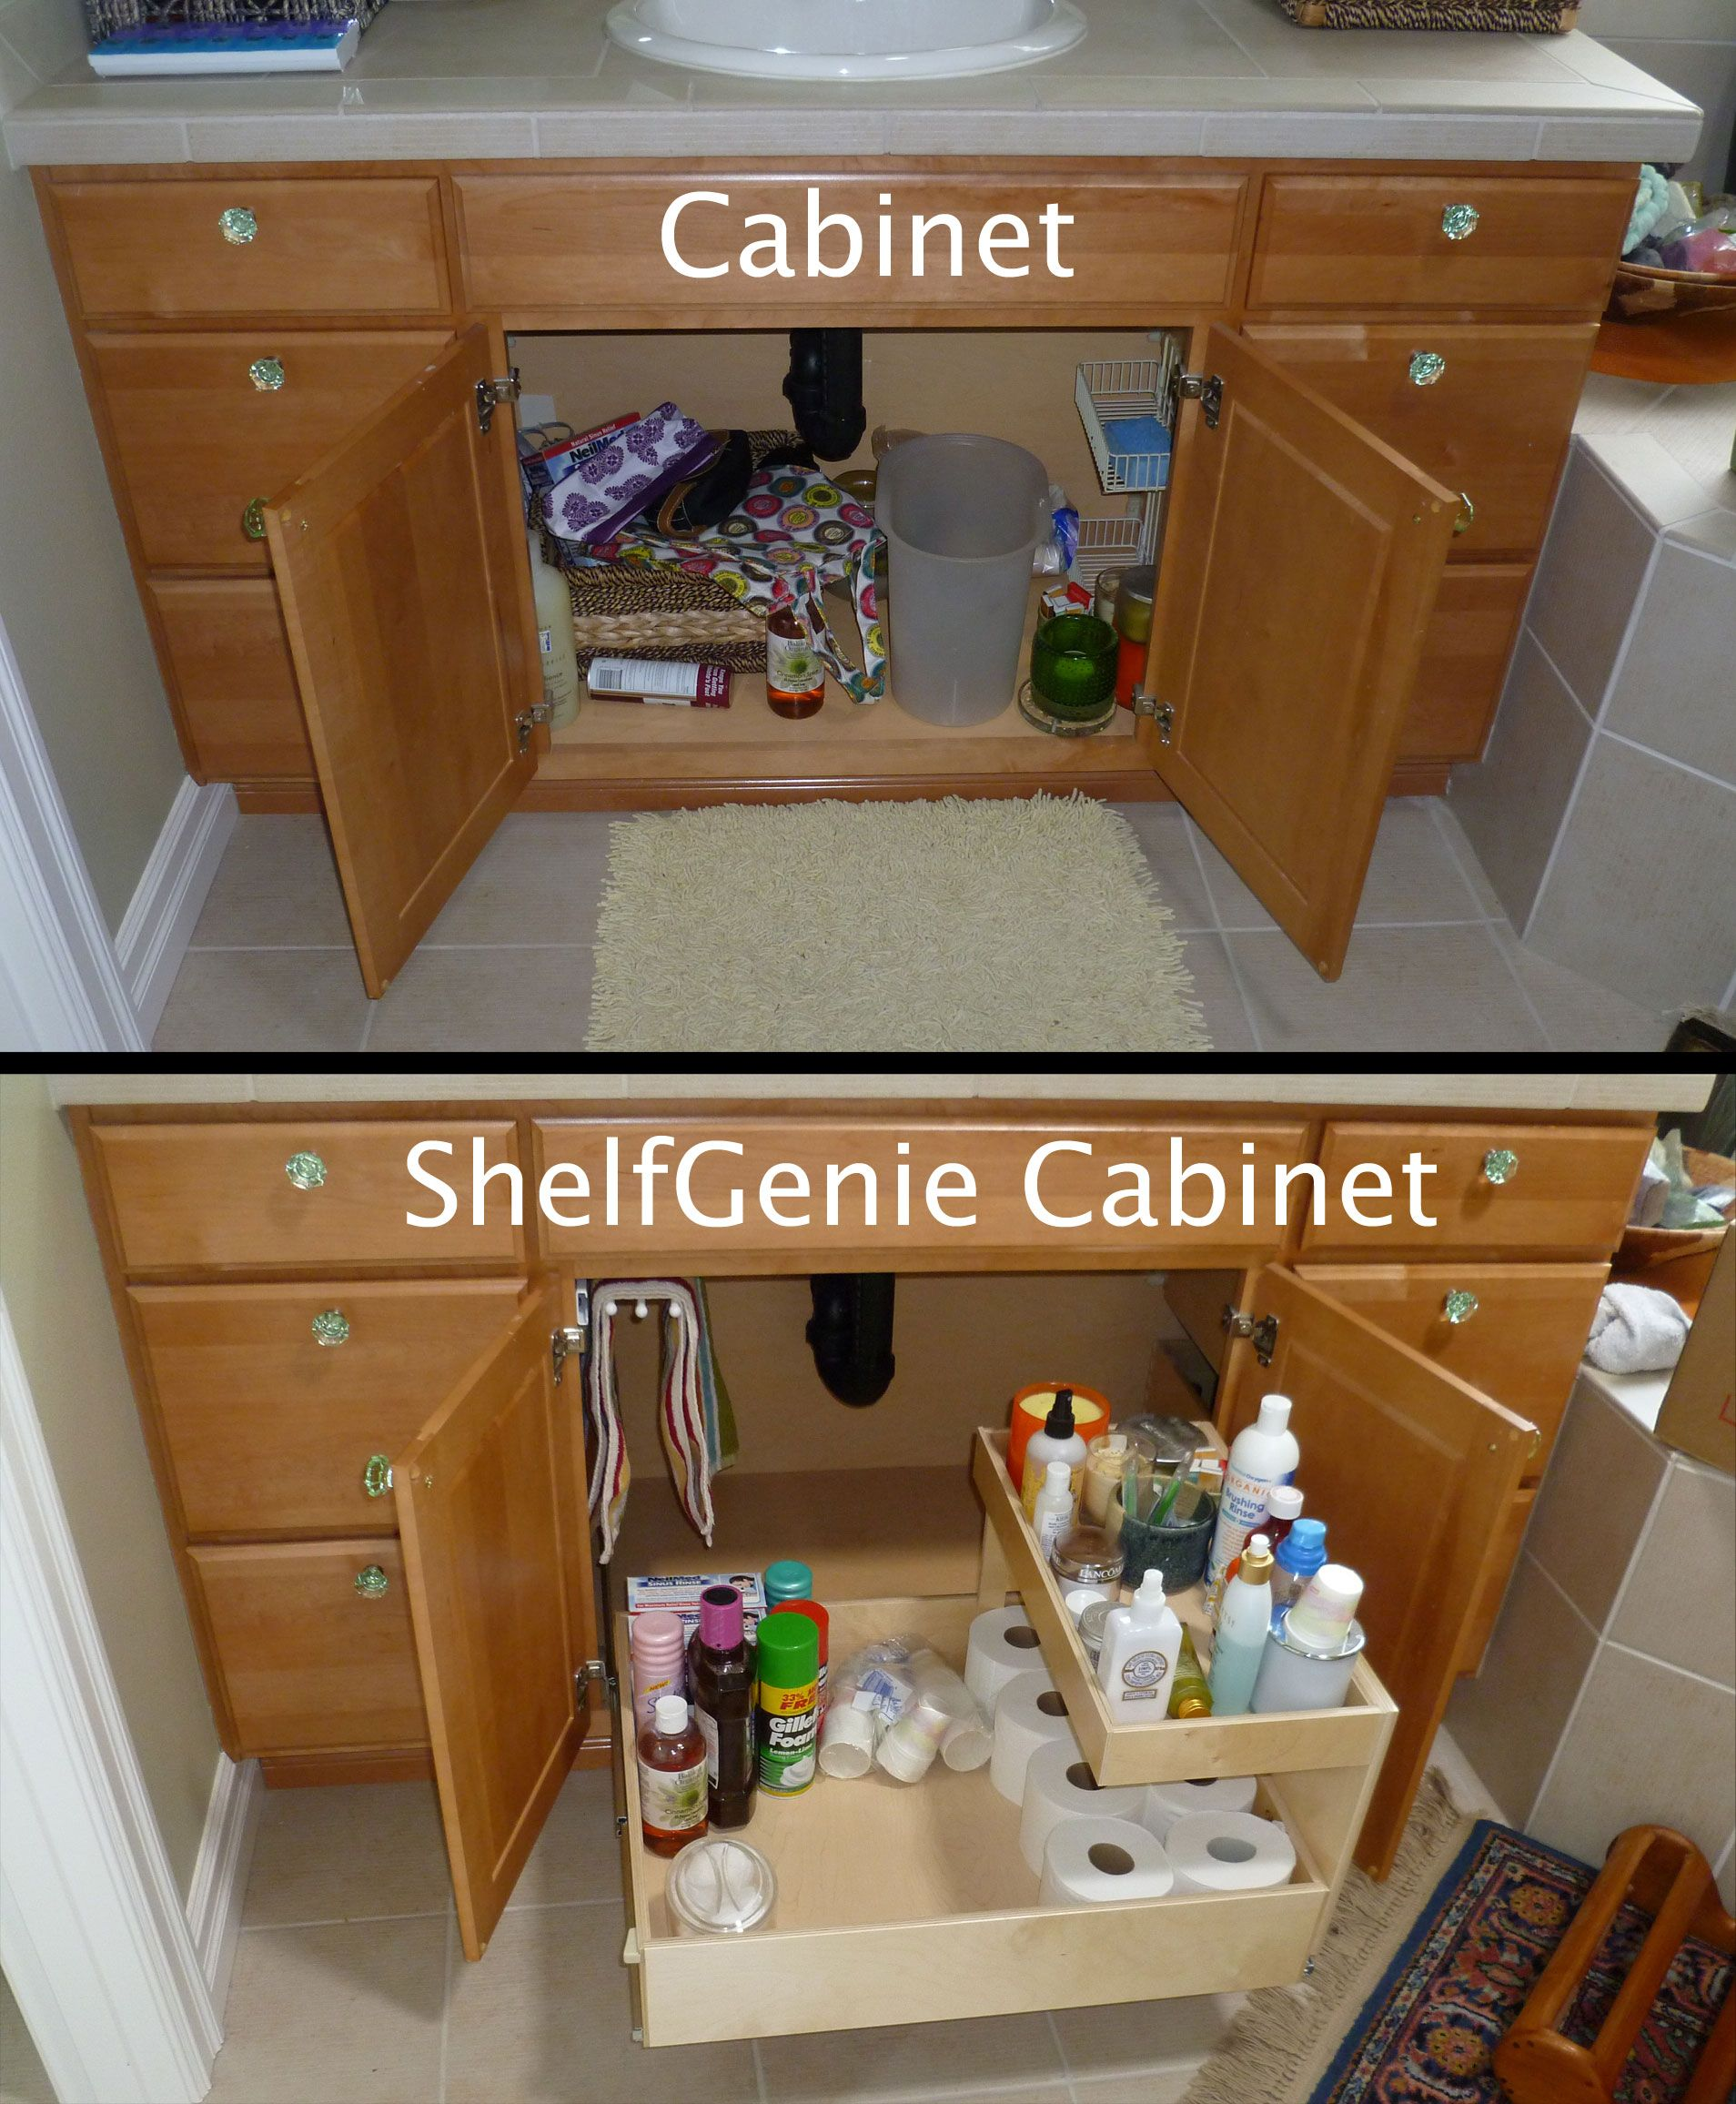 The Recipe For Turning This Cabinet Into A Shelfgenie Cabinet Add One Pull Out Towel Bathroom Storage Solutions Bathroom Sink Storage Kitchen Cabinet Storage